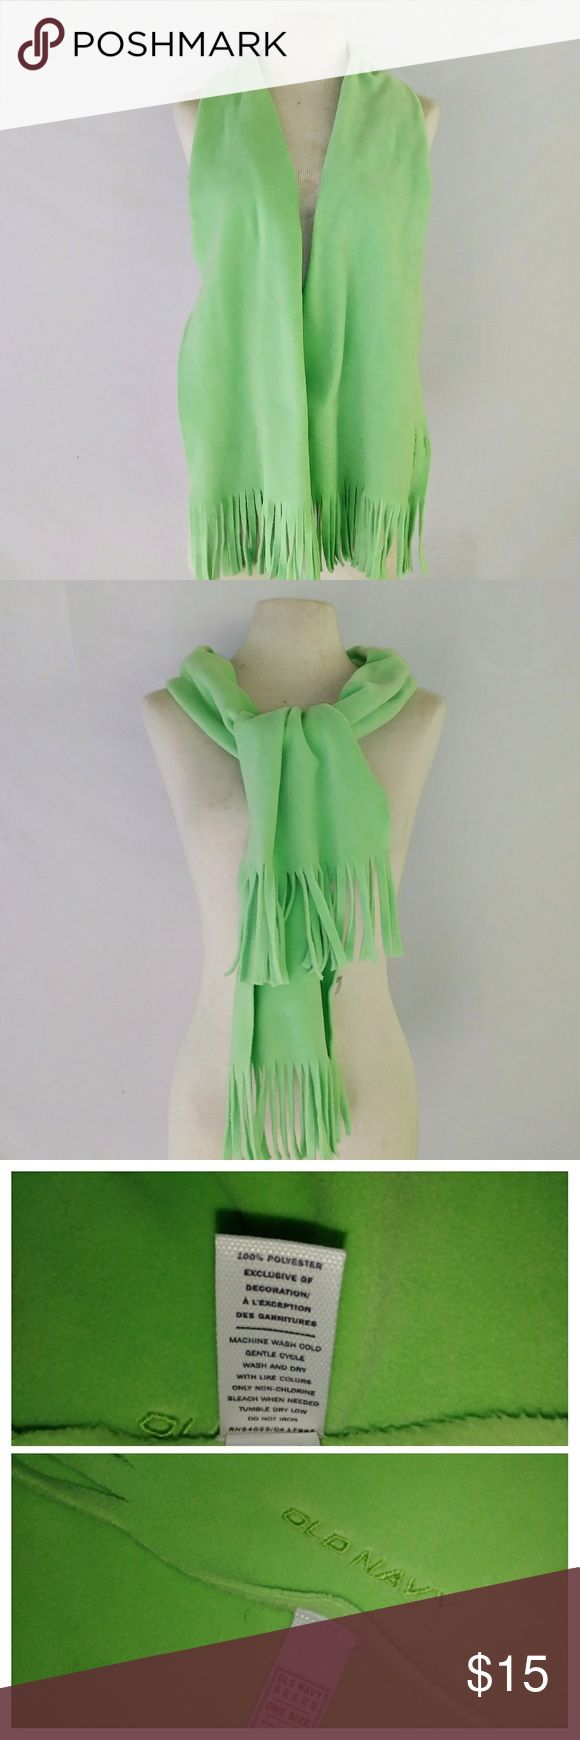 OLD Navy Fleece Scarf Bright Soft Spring Green Fleece Scarf with Fringe by Old Navy. In excellent used condition. From a smoke free home. Make an offer! BUNDLE & Automatically Get 20% Off on 2+ Items. Bundle one or more items and I'll make you a customized offer up to 40% off - the bigger the bundle the bigger the savings! *2017 SUGGESTED USER* Old Navy Accessories Scarves & Wraps